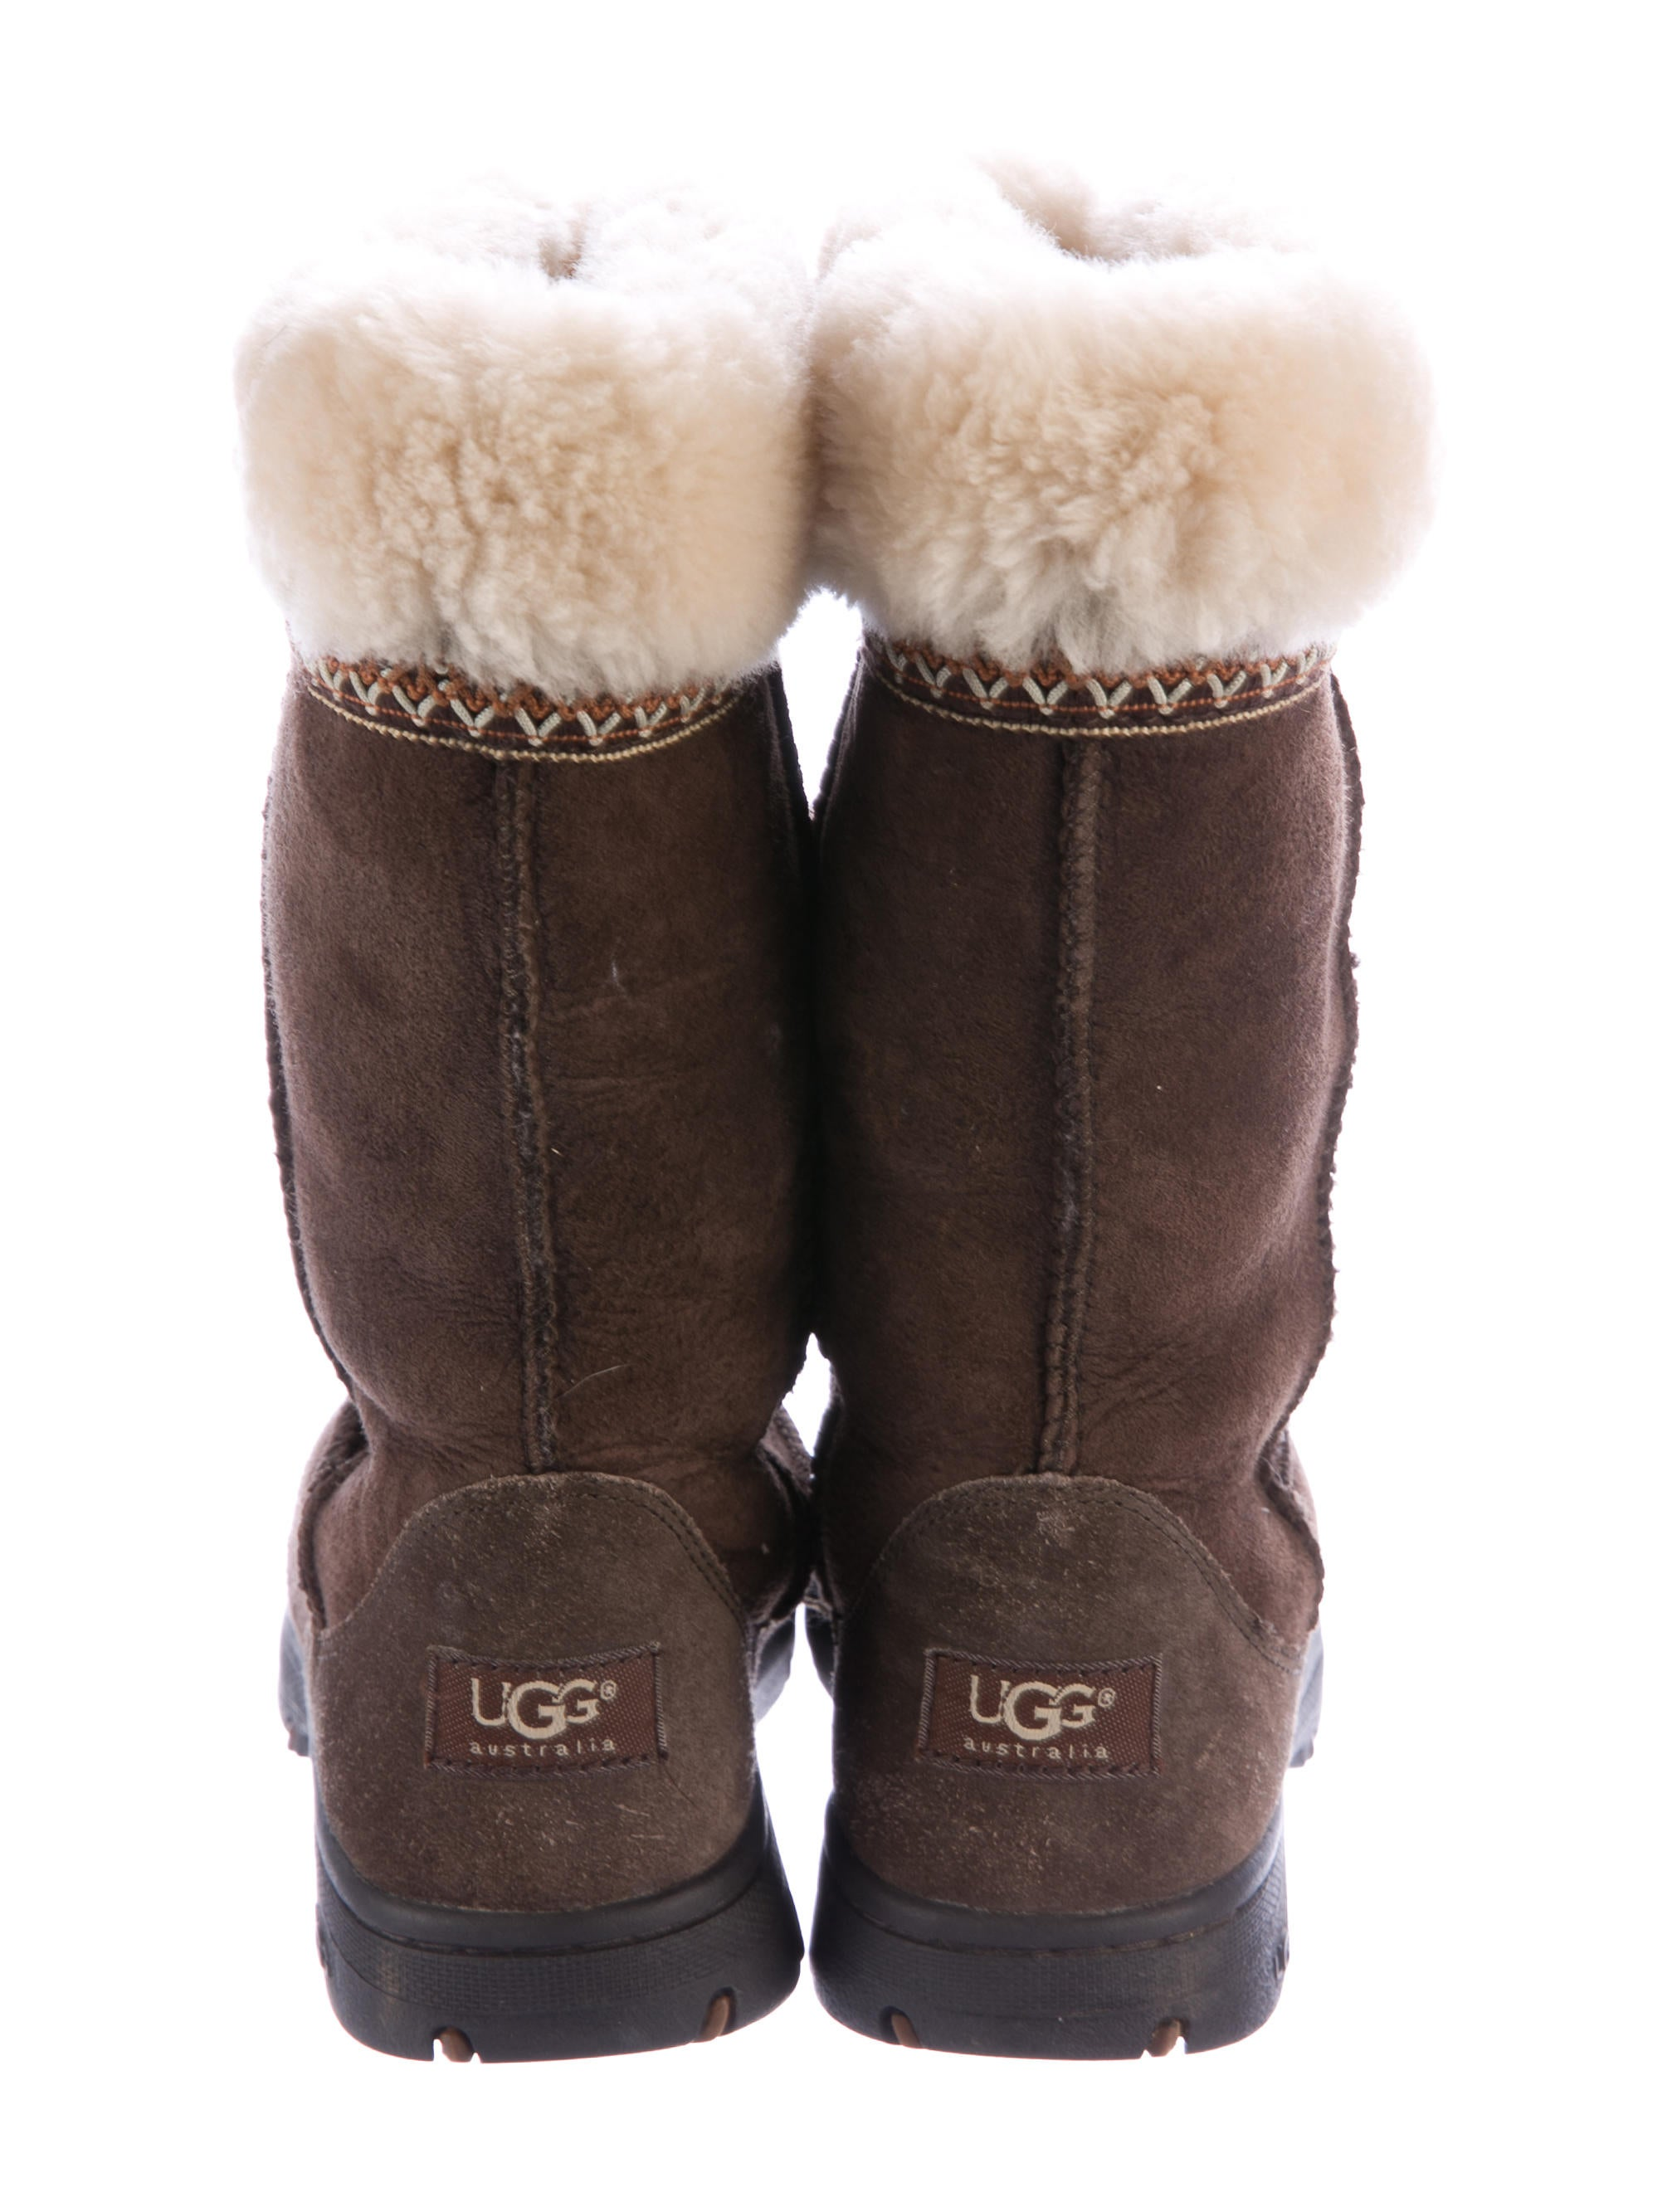 2ee887fcb95 Calf Circumference Of Ugg Boots